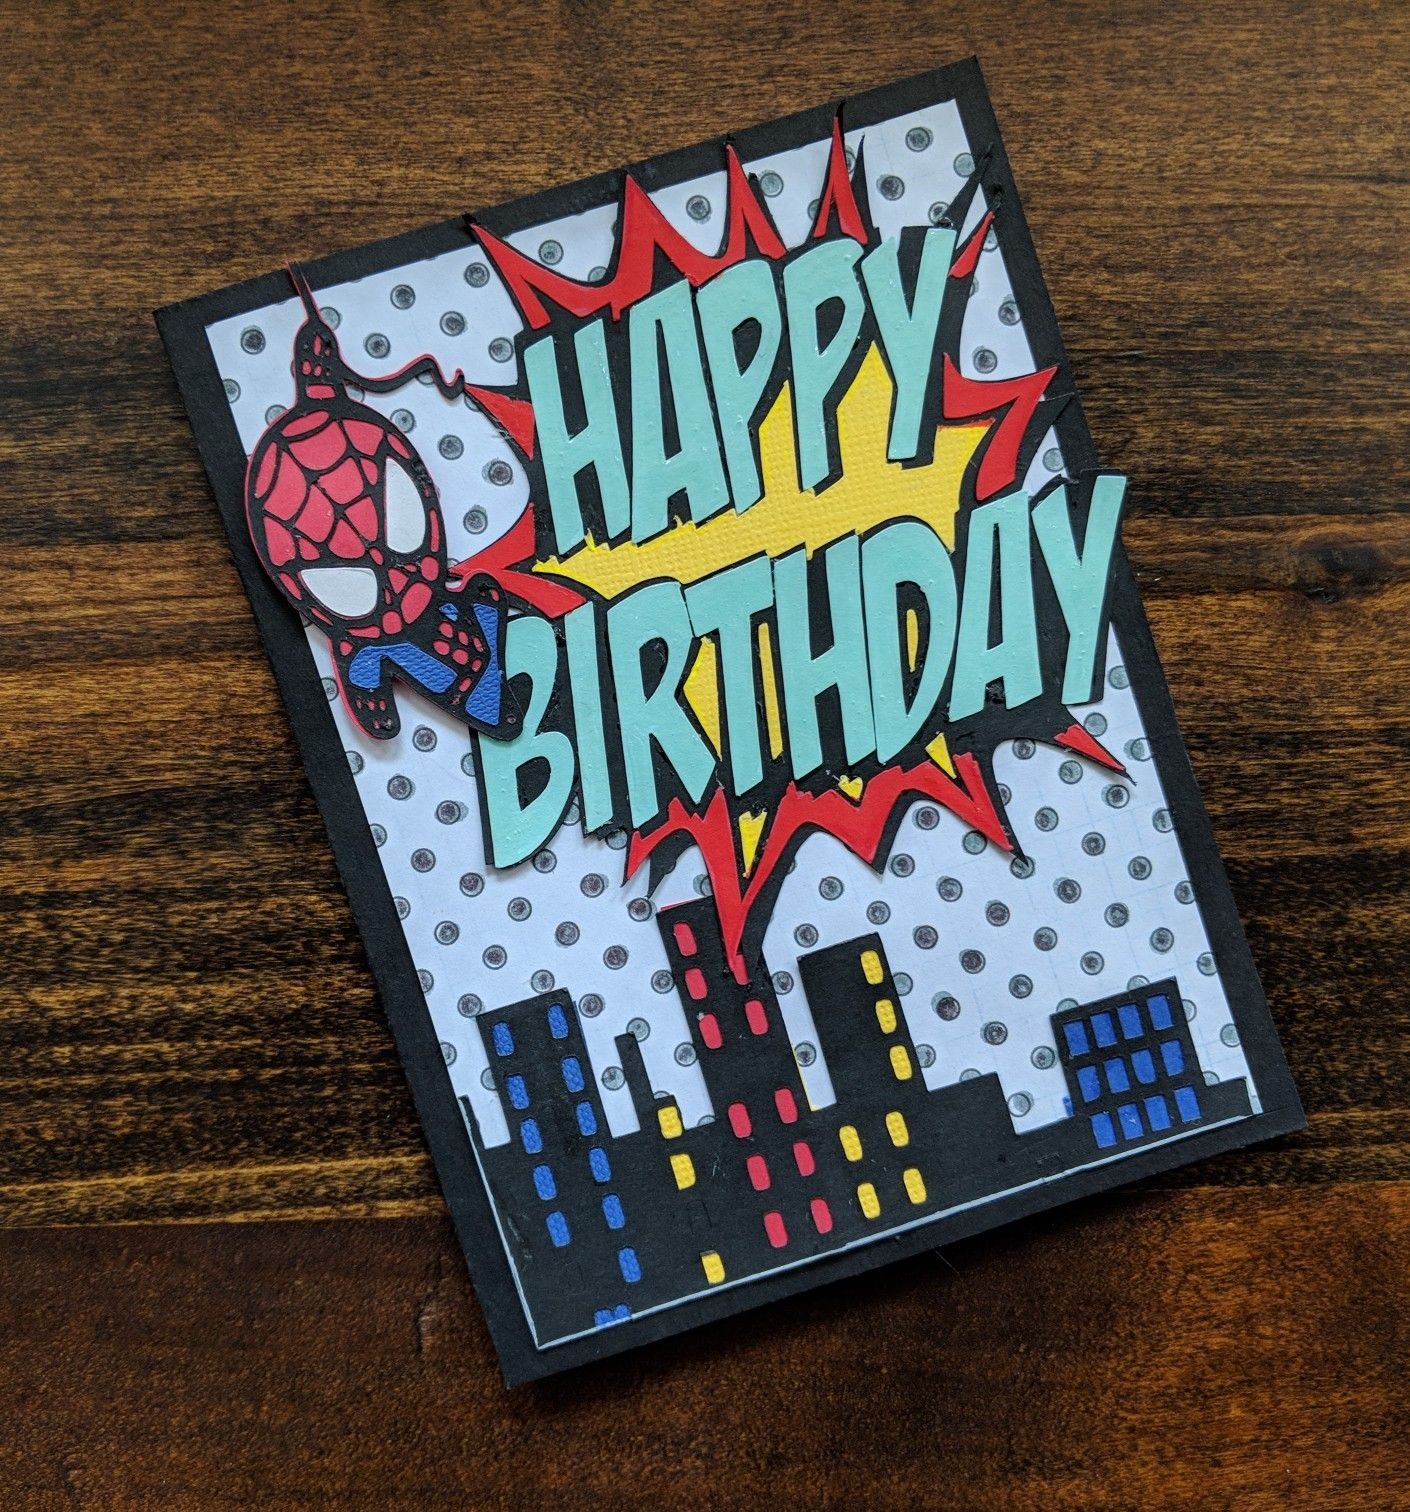 Spiderman Spider Man Just Swinging In To Wish You A Happy Birthday Cute Com Birthday Cards For Friends Happy Birthday Spiderman Best Friend Birthday Cards